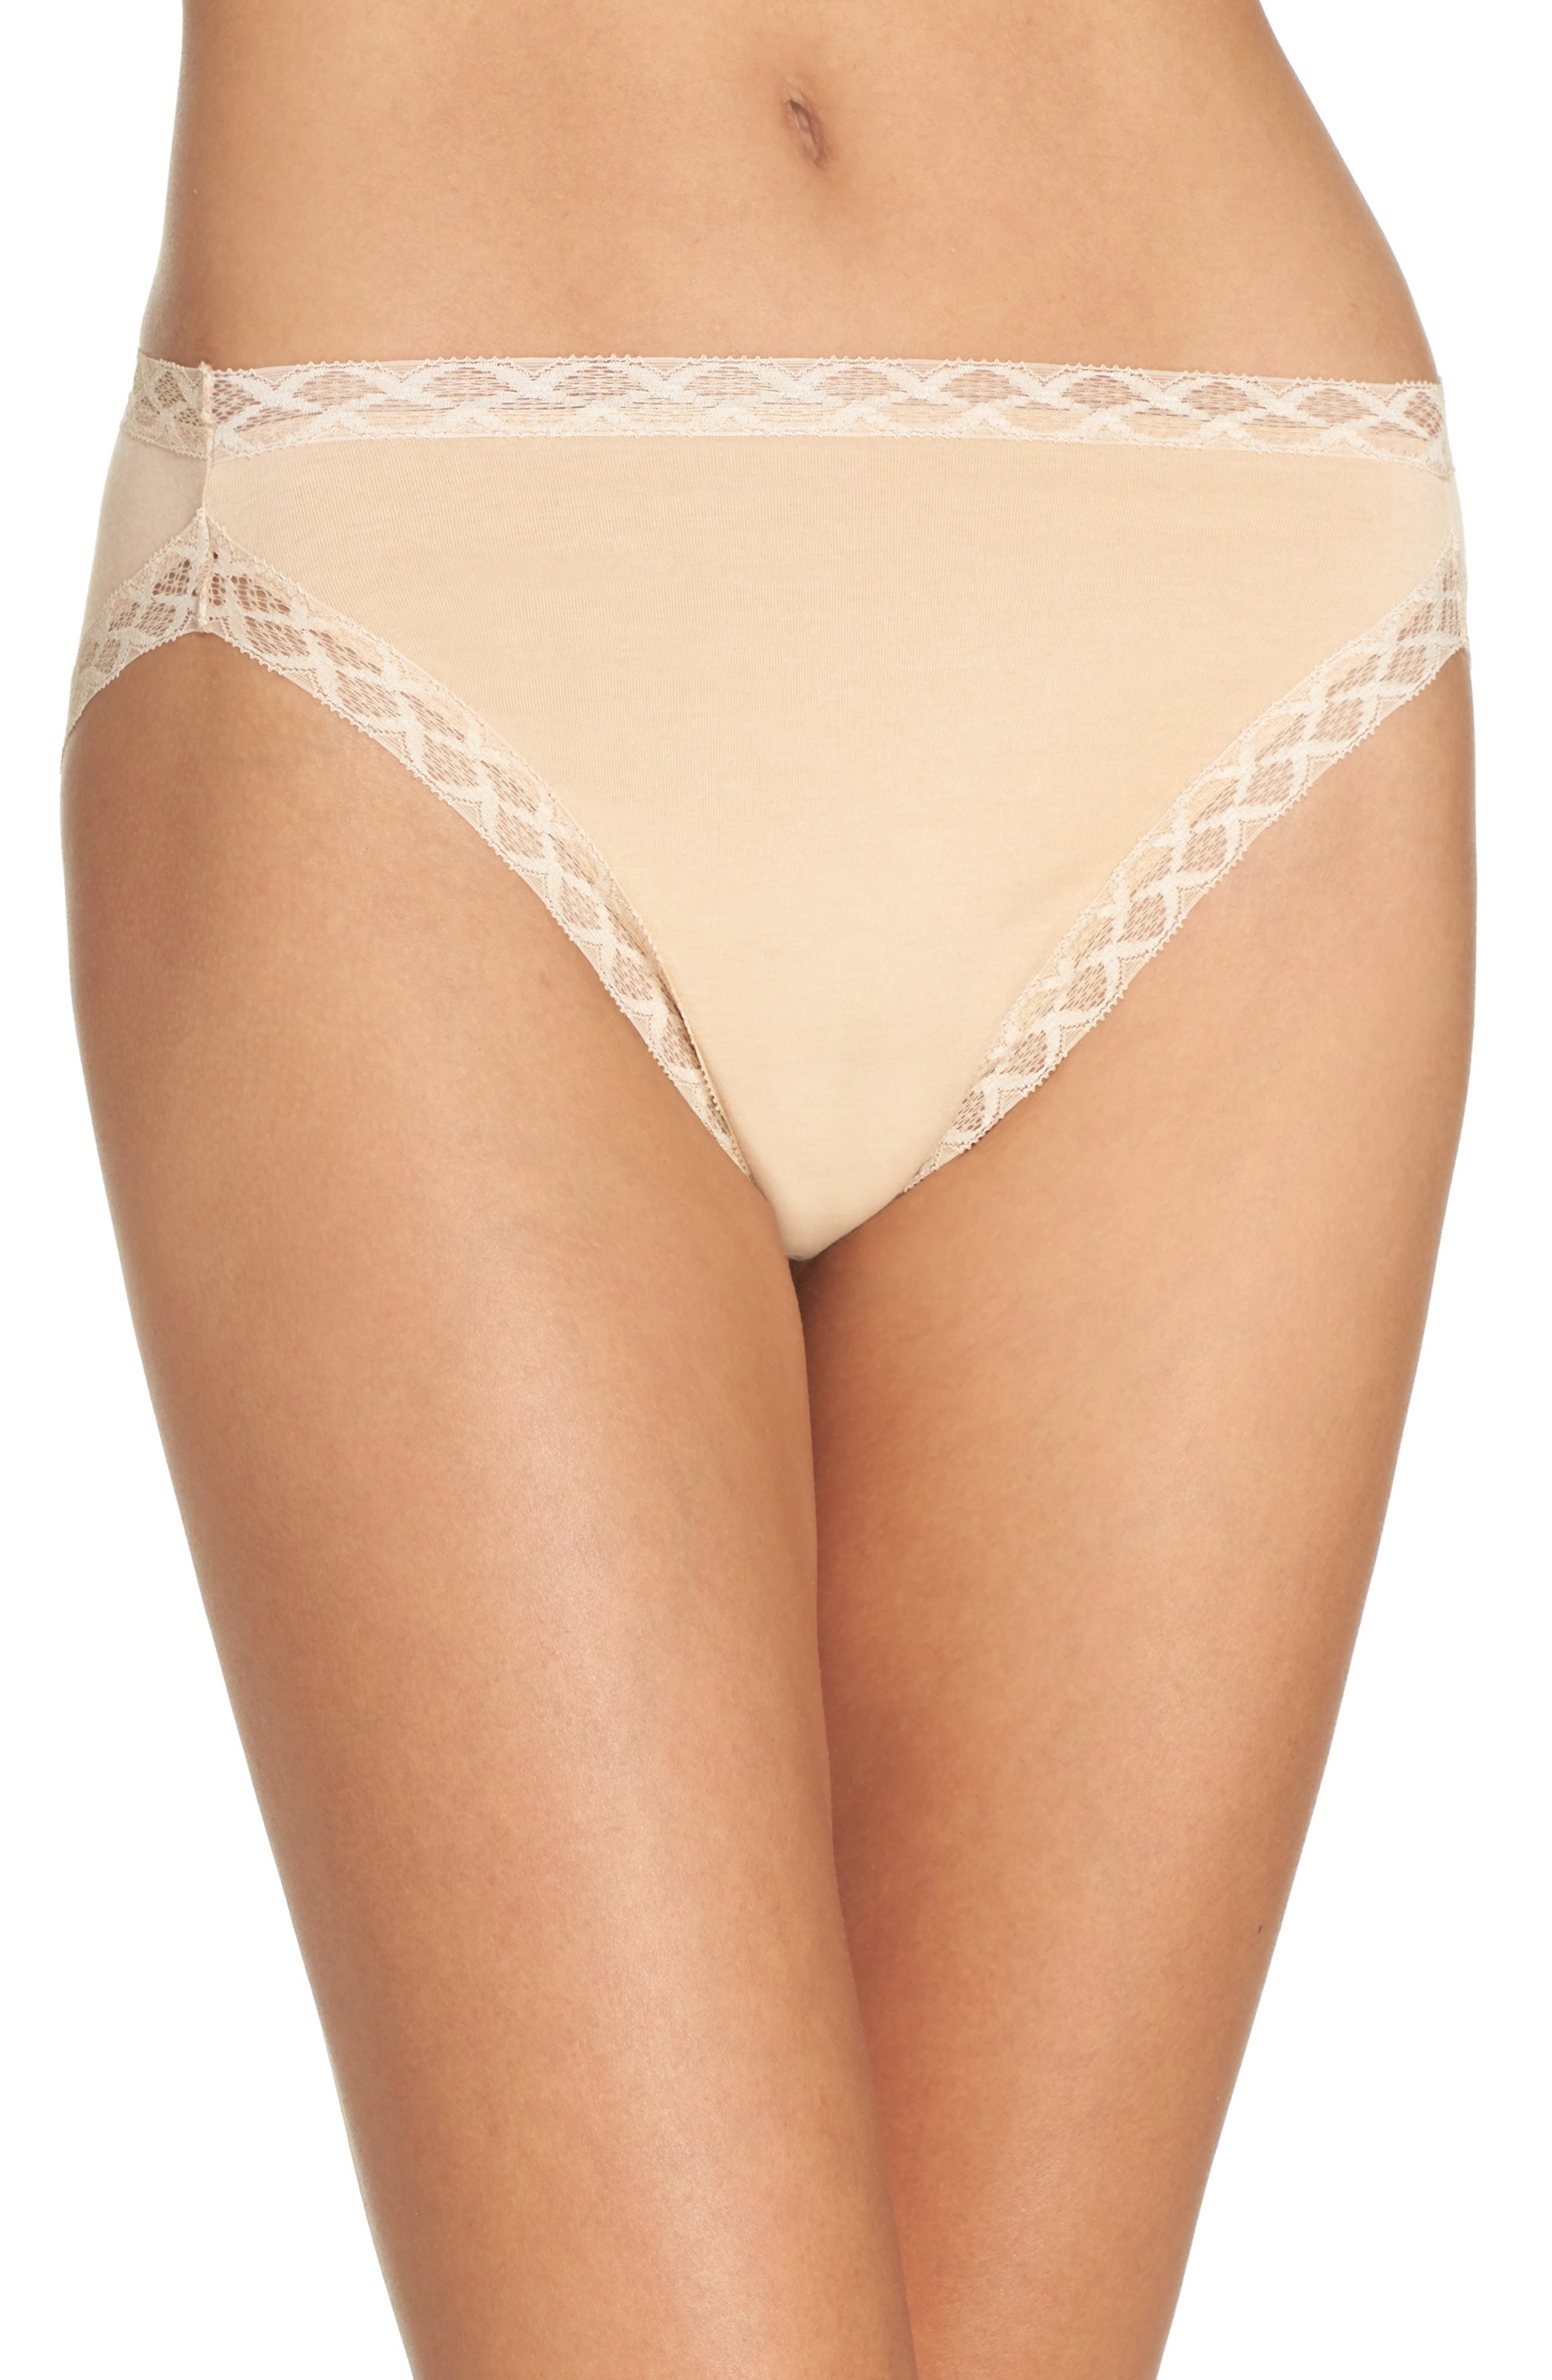 Main Image - Natori 'Bliss' French Cut Briefs (3 for $45)